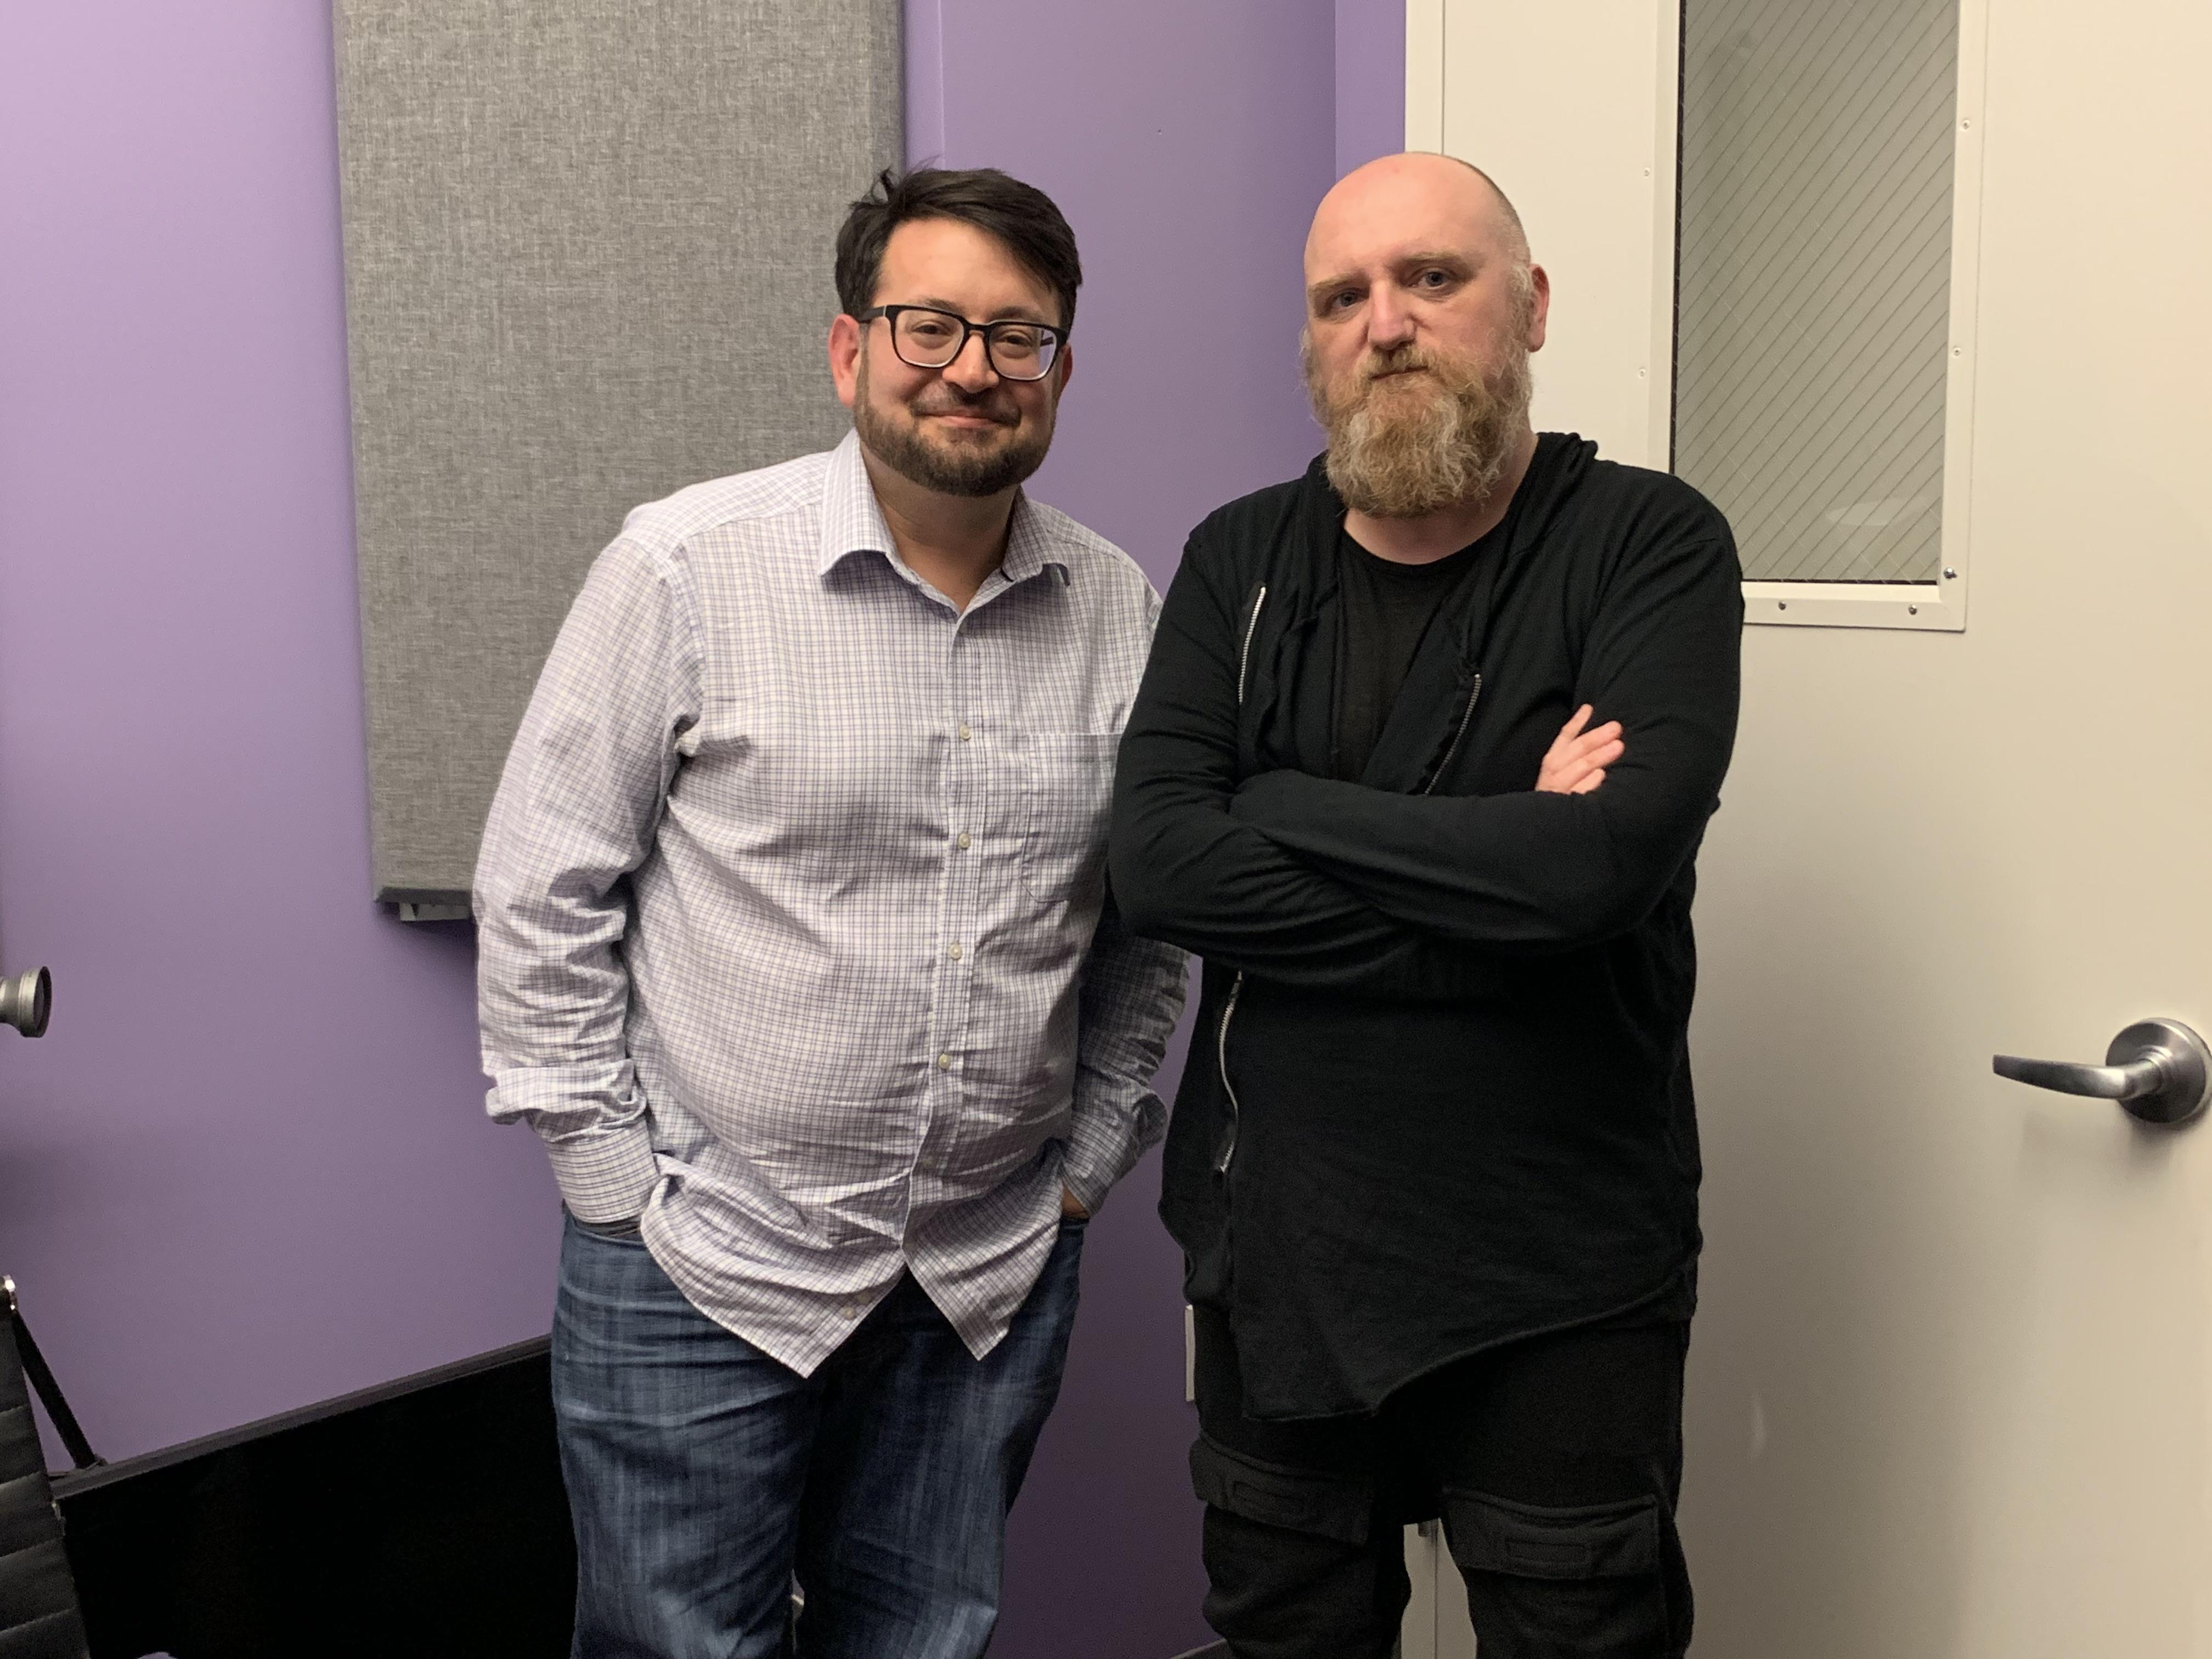 <p>Tim Maughan (right) and Scott Stein (left) at the podcast studio.</p>